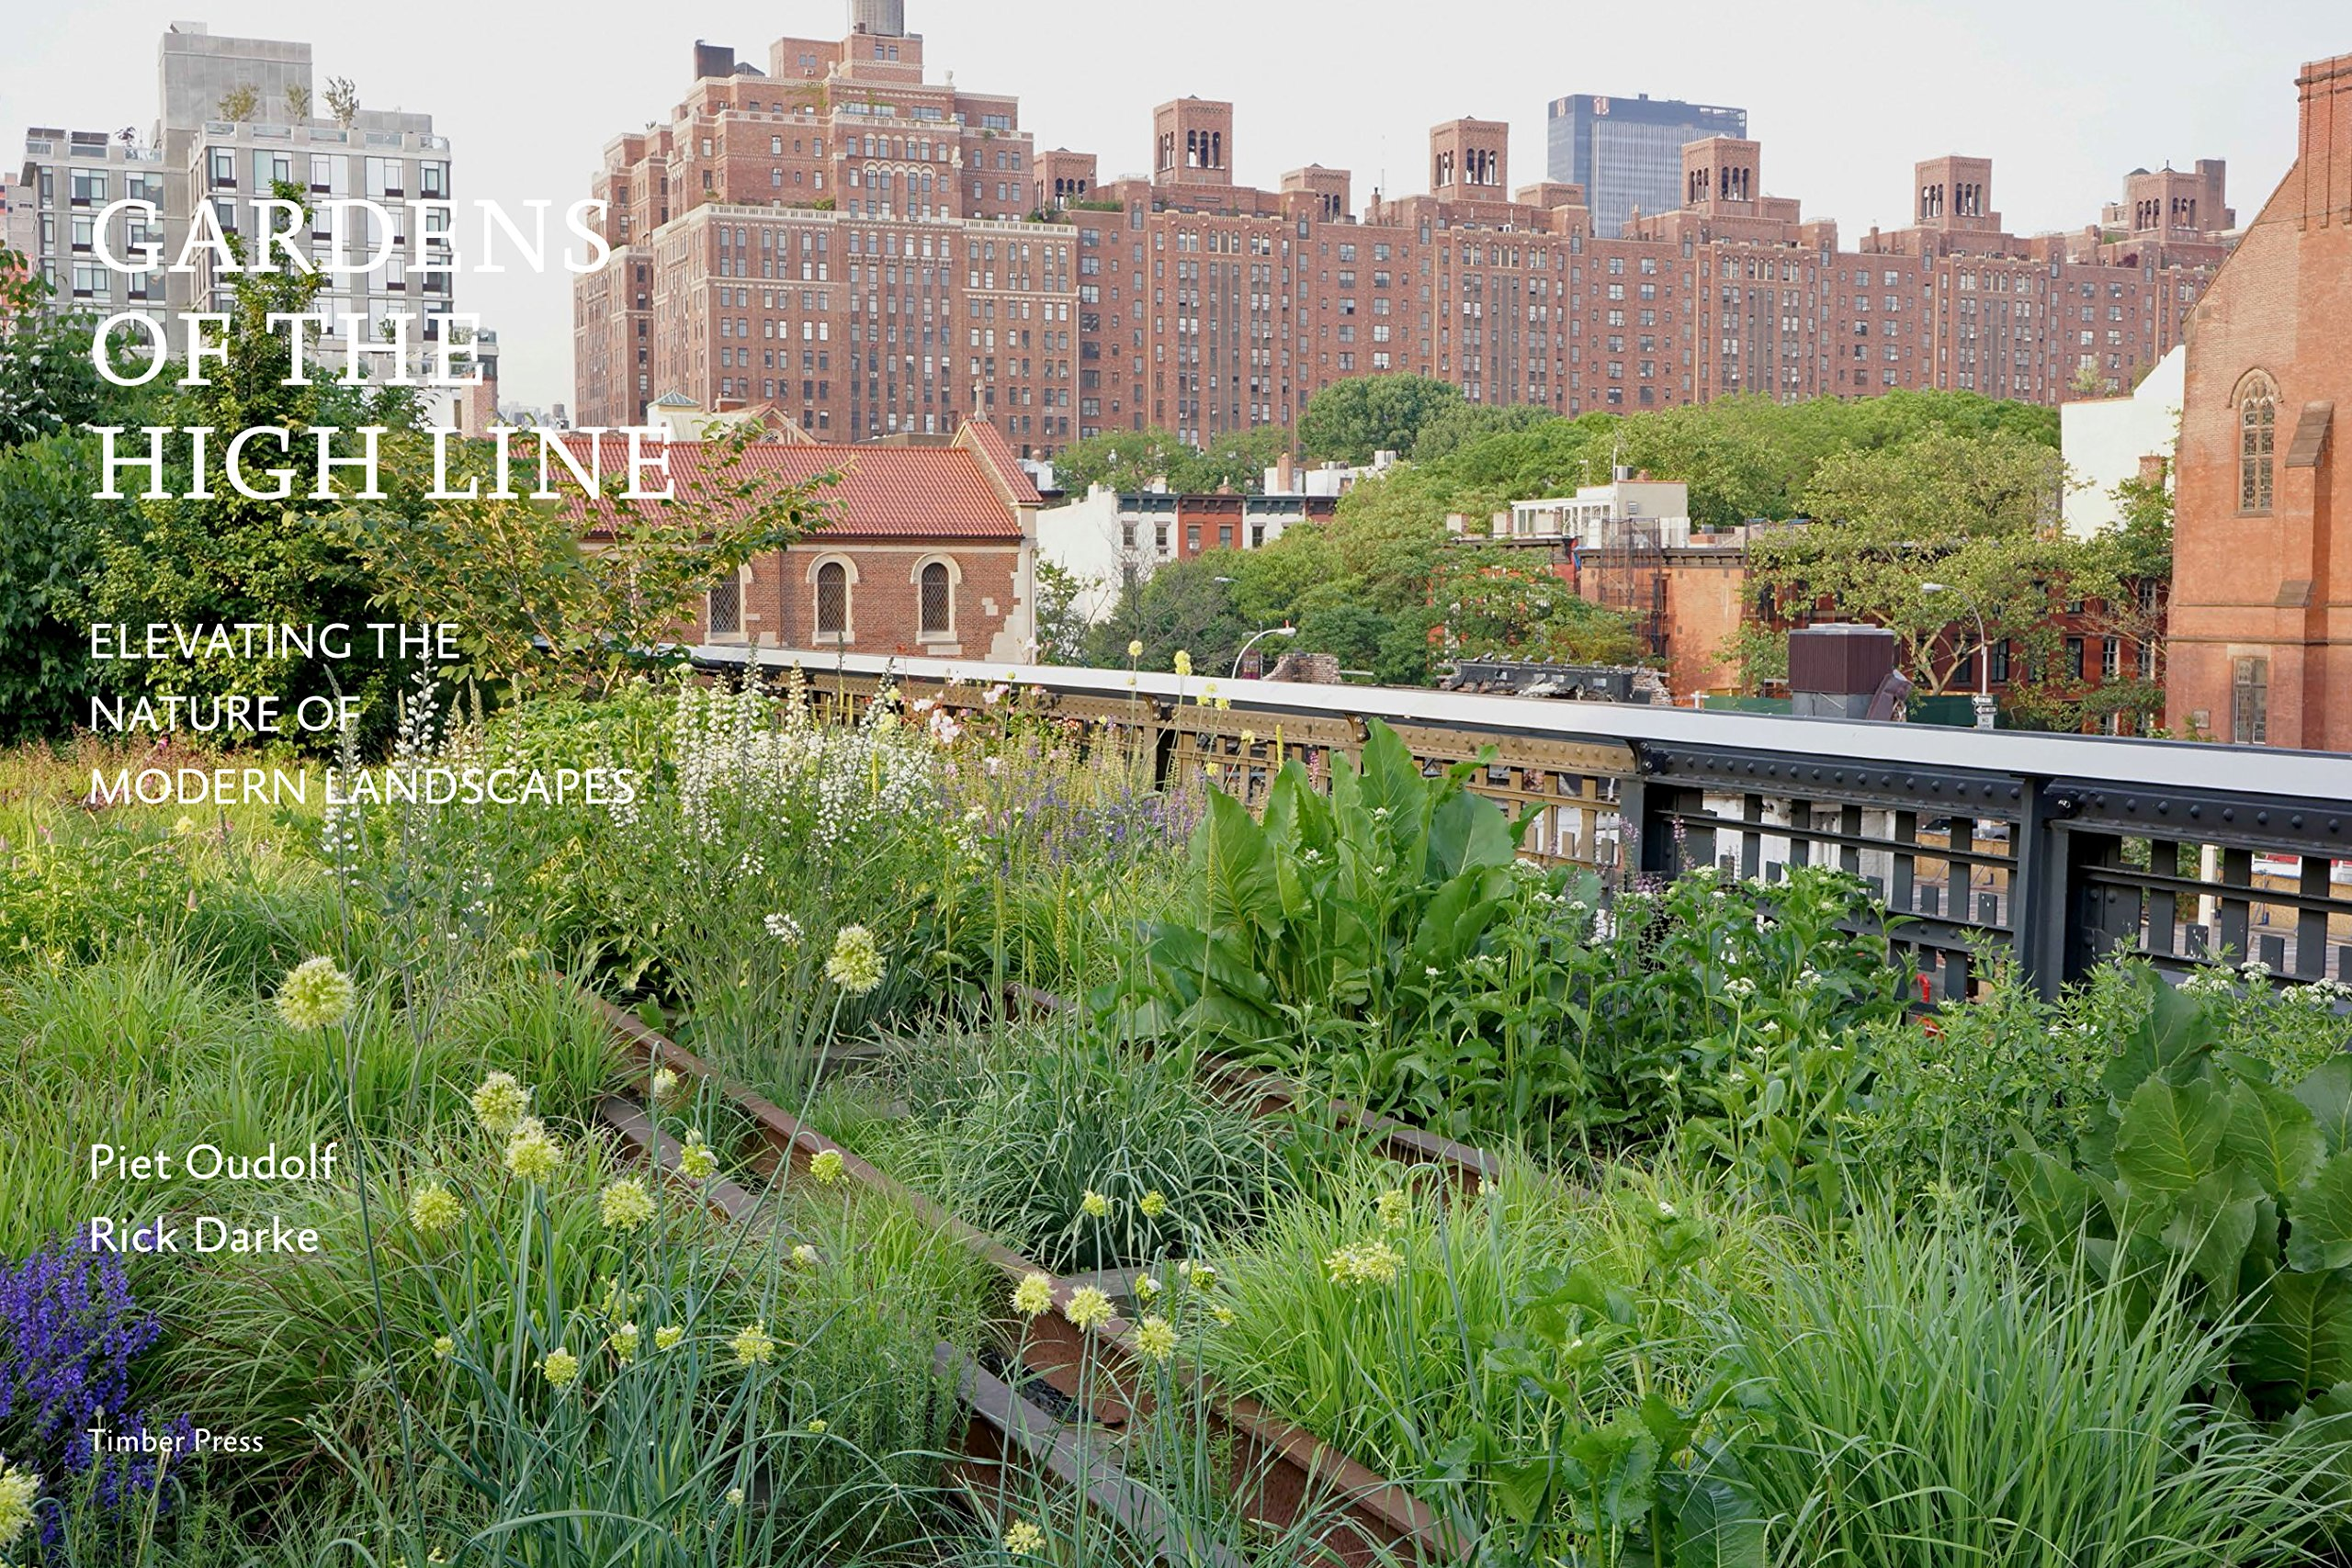 Gardens Of The High Line Elevating The Nature Of Modern